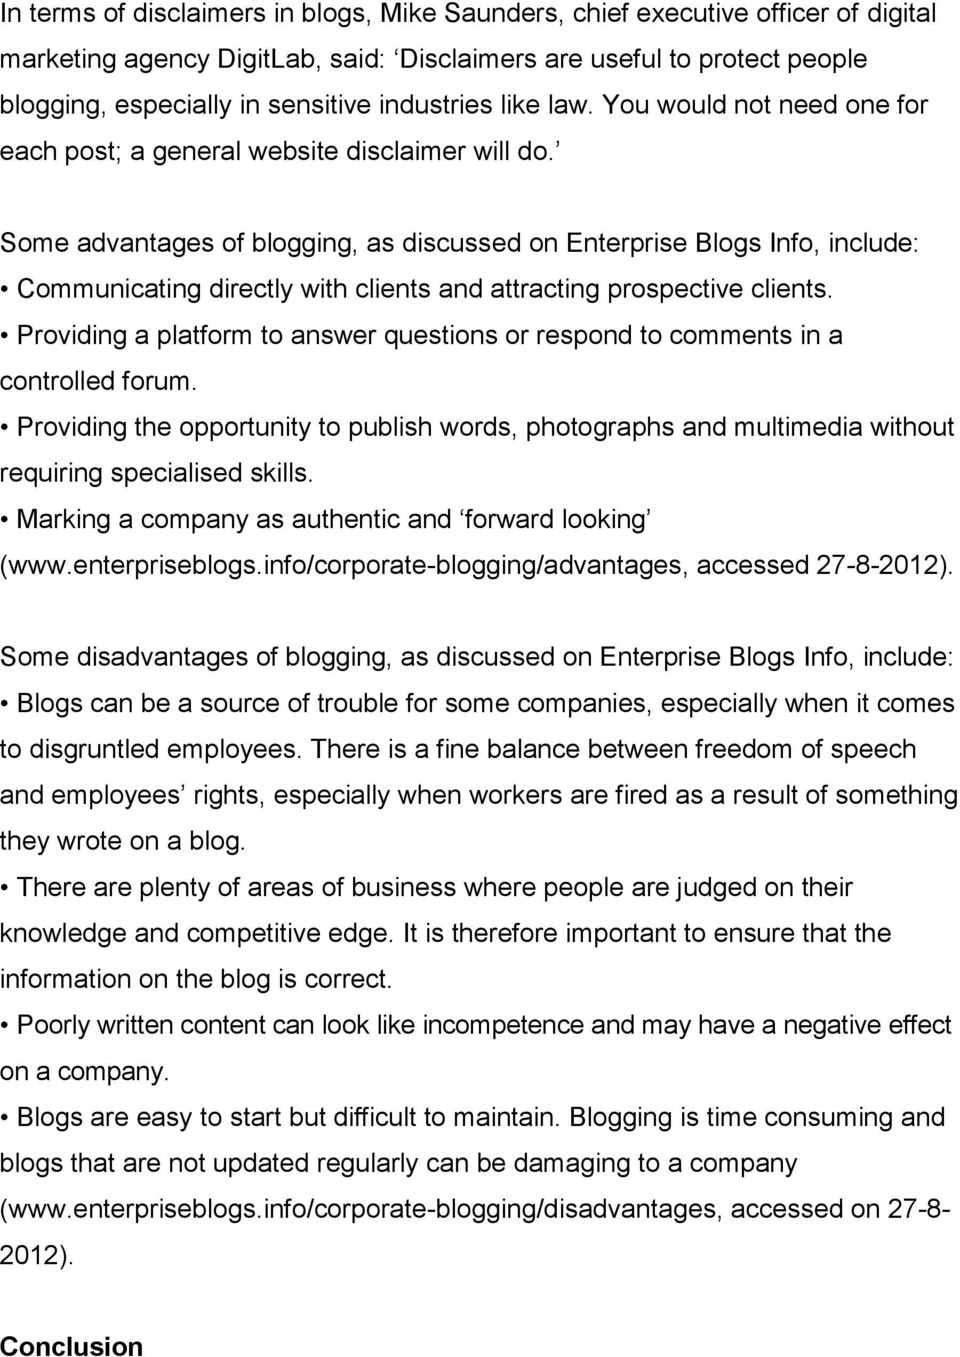 Some advantages of blogging, as discussed on Enterprise Blogs Info, include: Communicating directly with clients and attracting prospective clients.